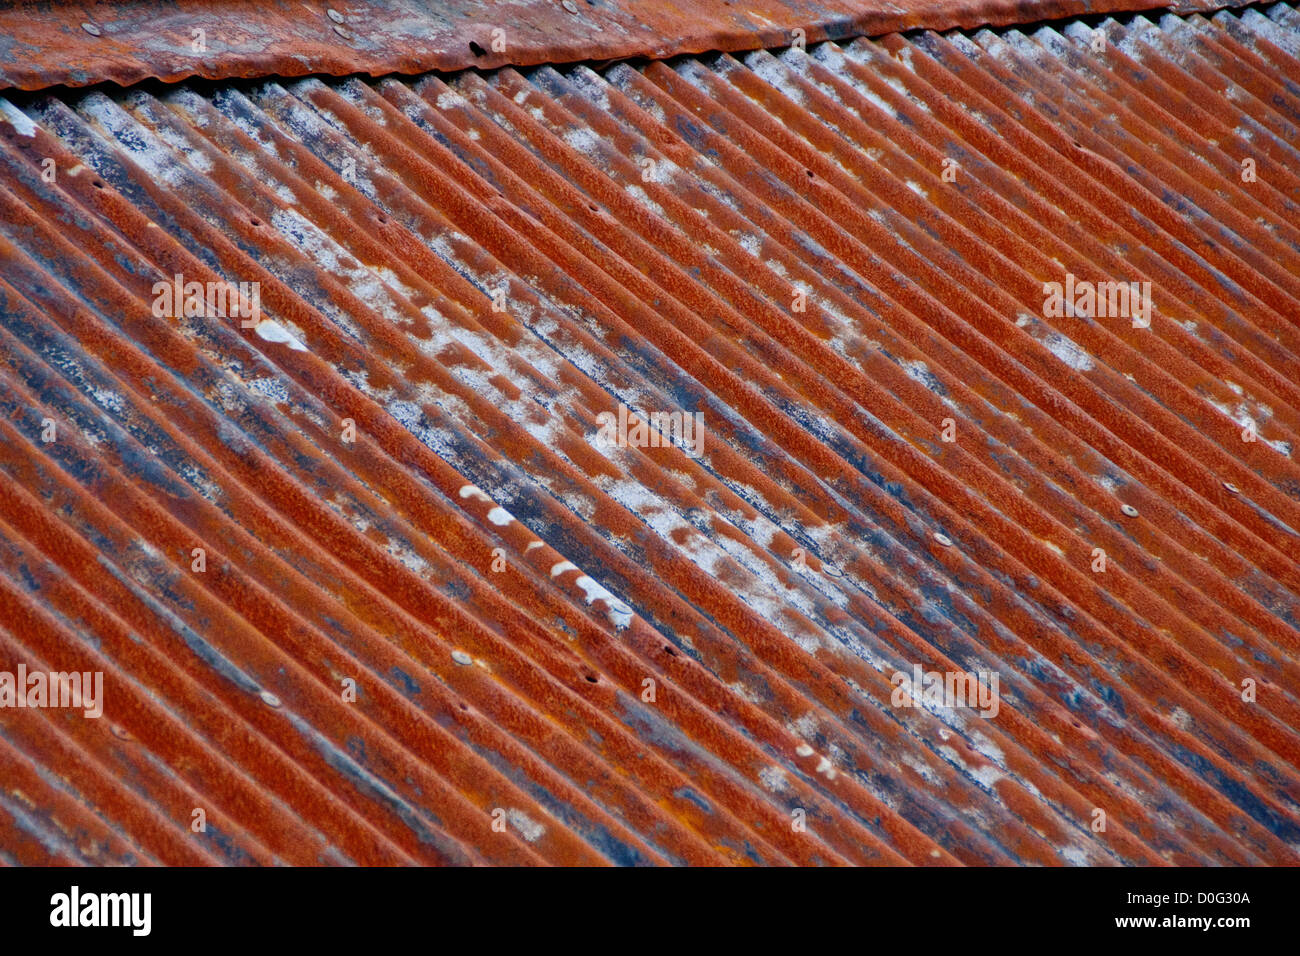 A Weathered Rusty Corrugated Tin Roof